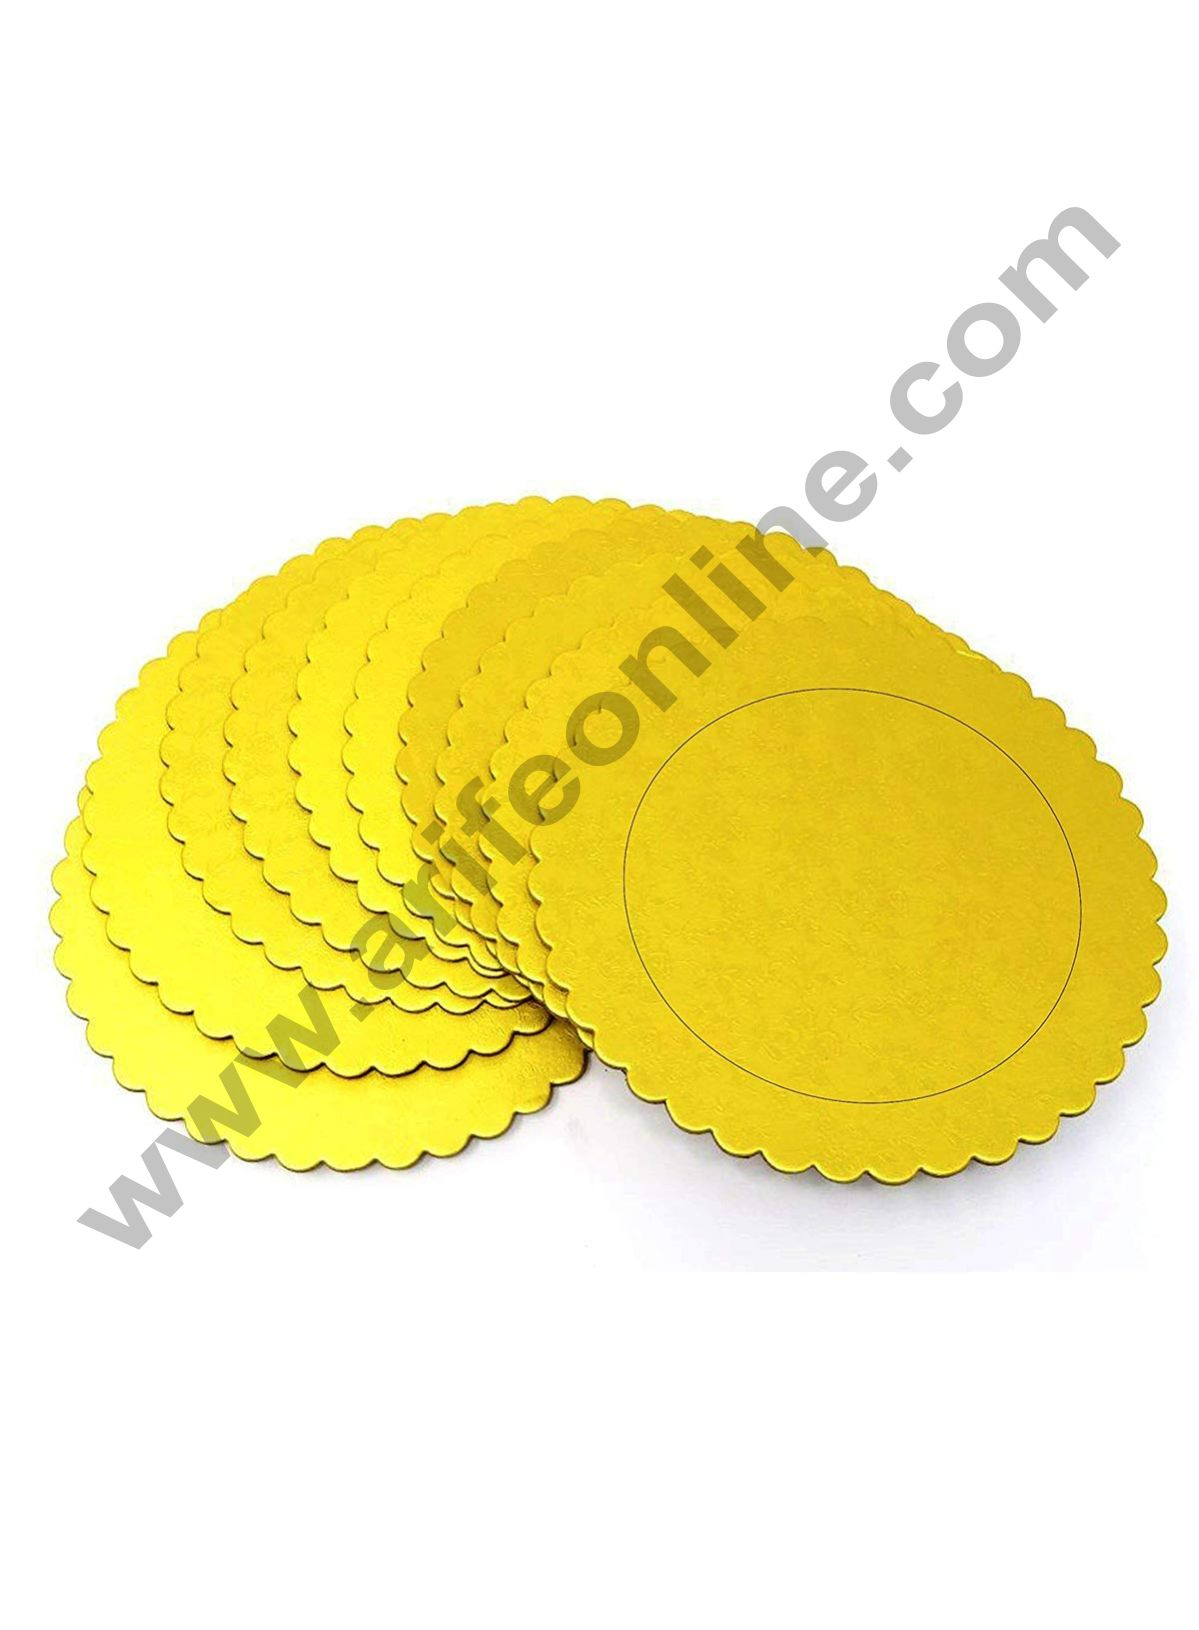 Cake Decor Gold Design Flower Print Glossy Corrugated Cake Board Base 16 InchDiameter for 4 AND 5 Kg Cakes- Pack of 5Pcs